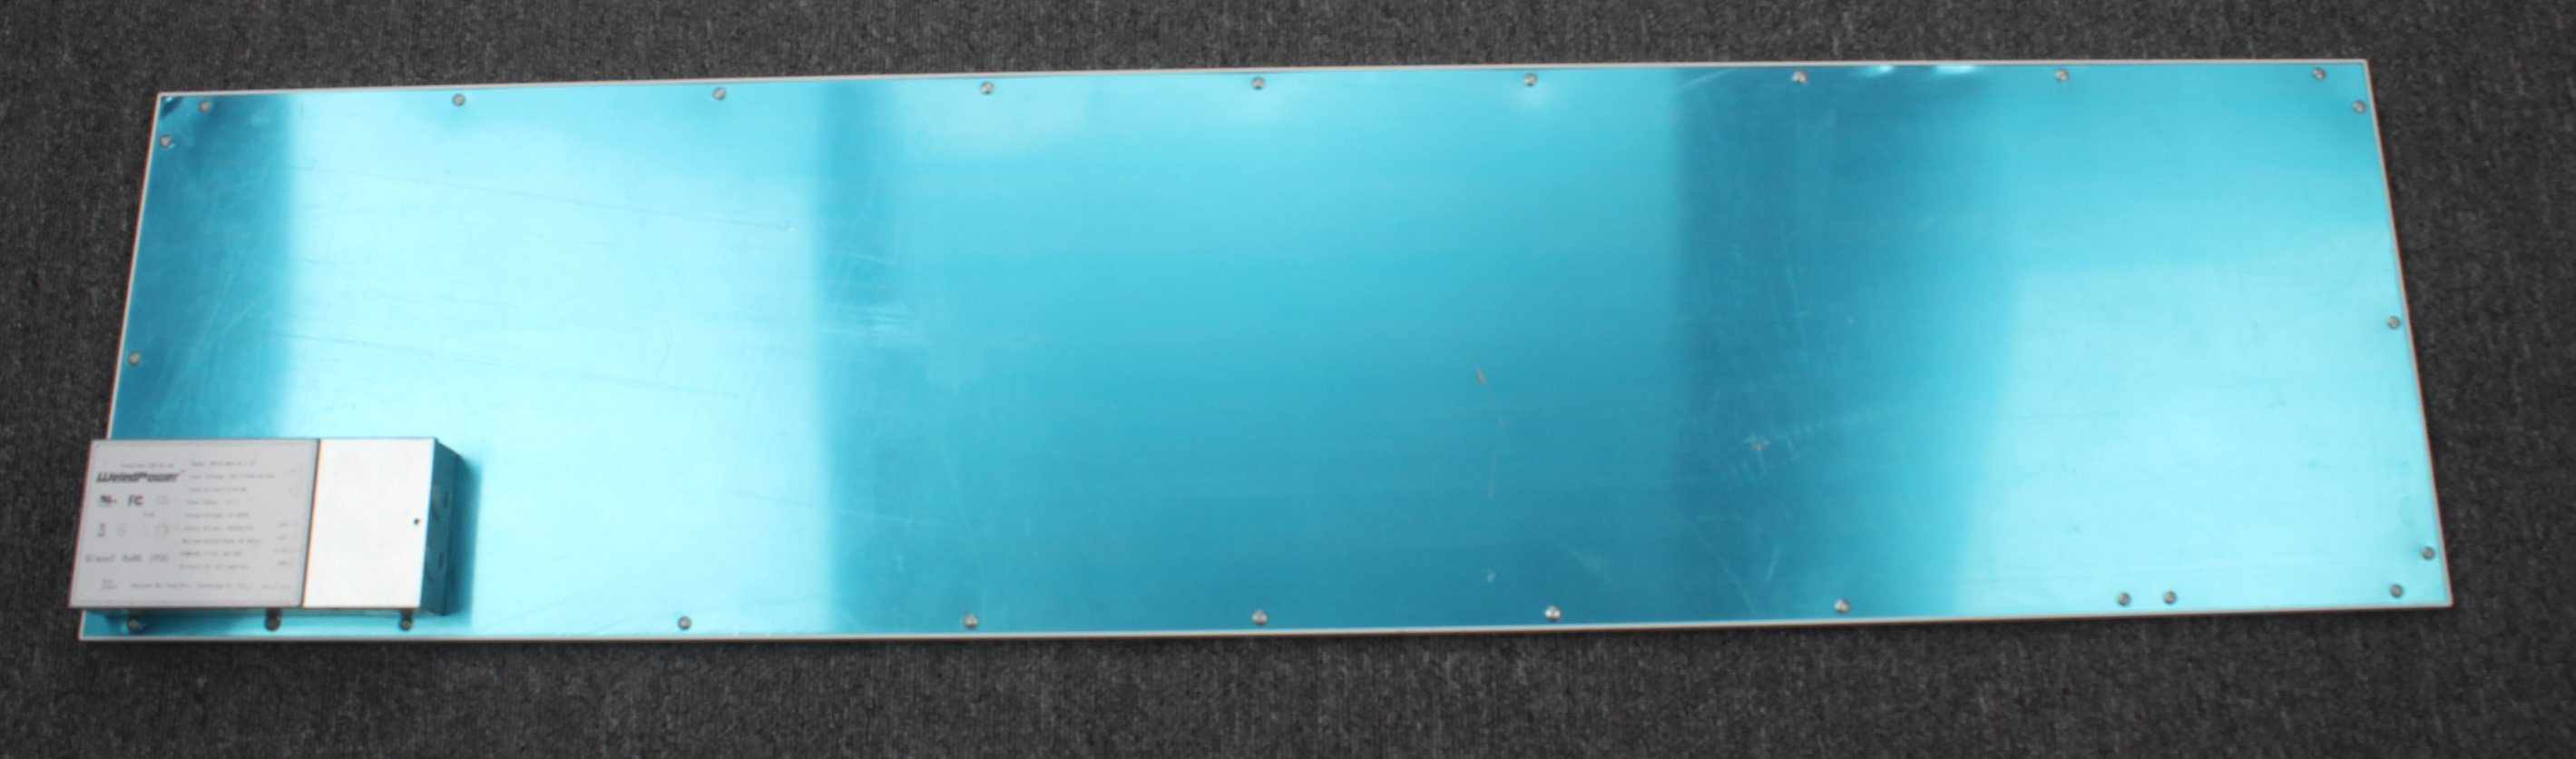 1200X300mm 40W LED Panel for Office Lighting with 3years Warranty